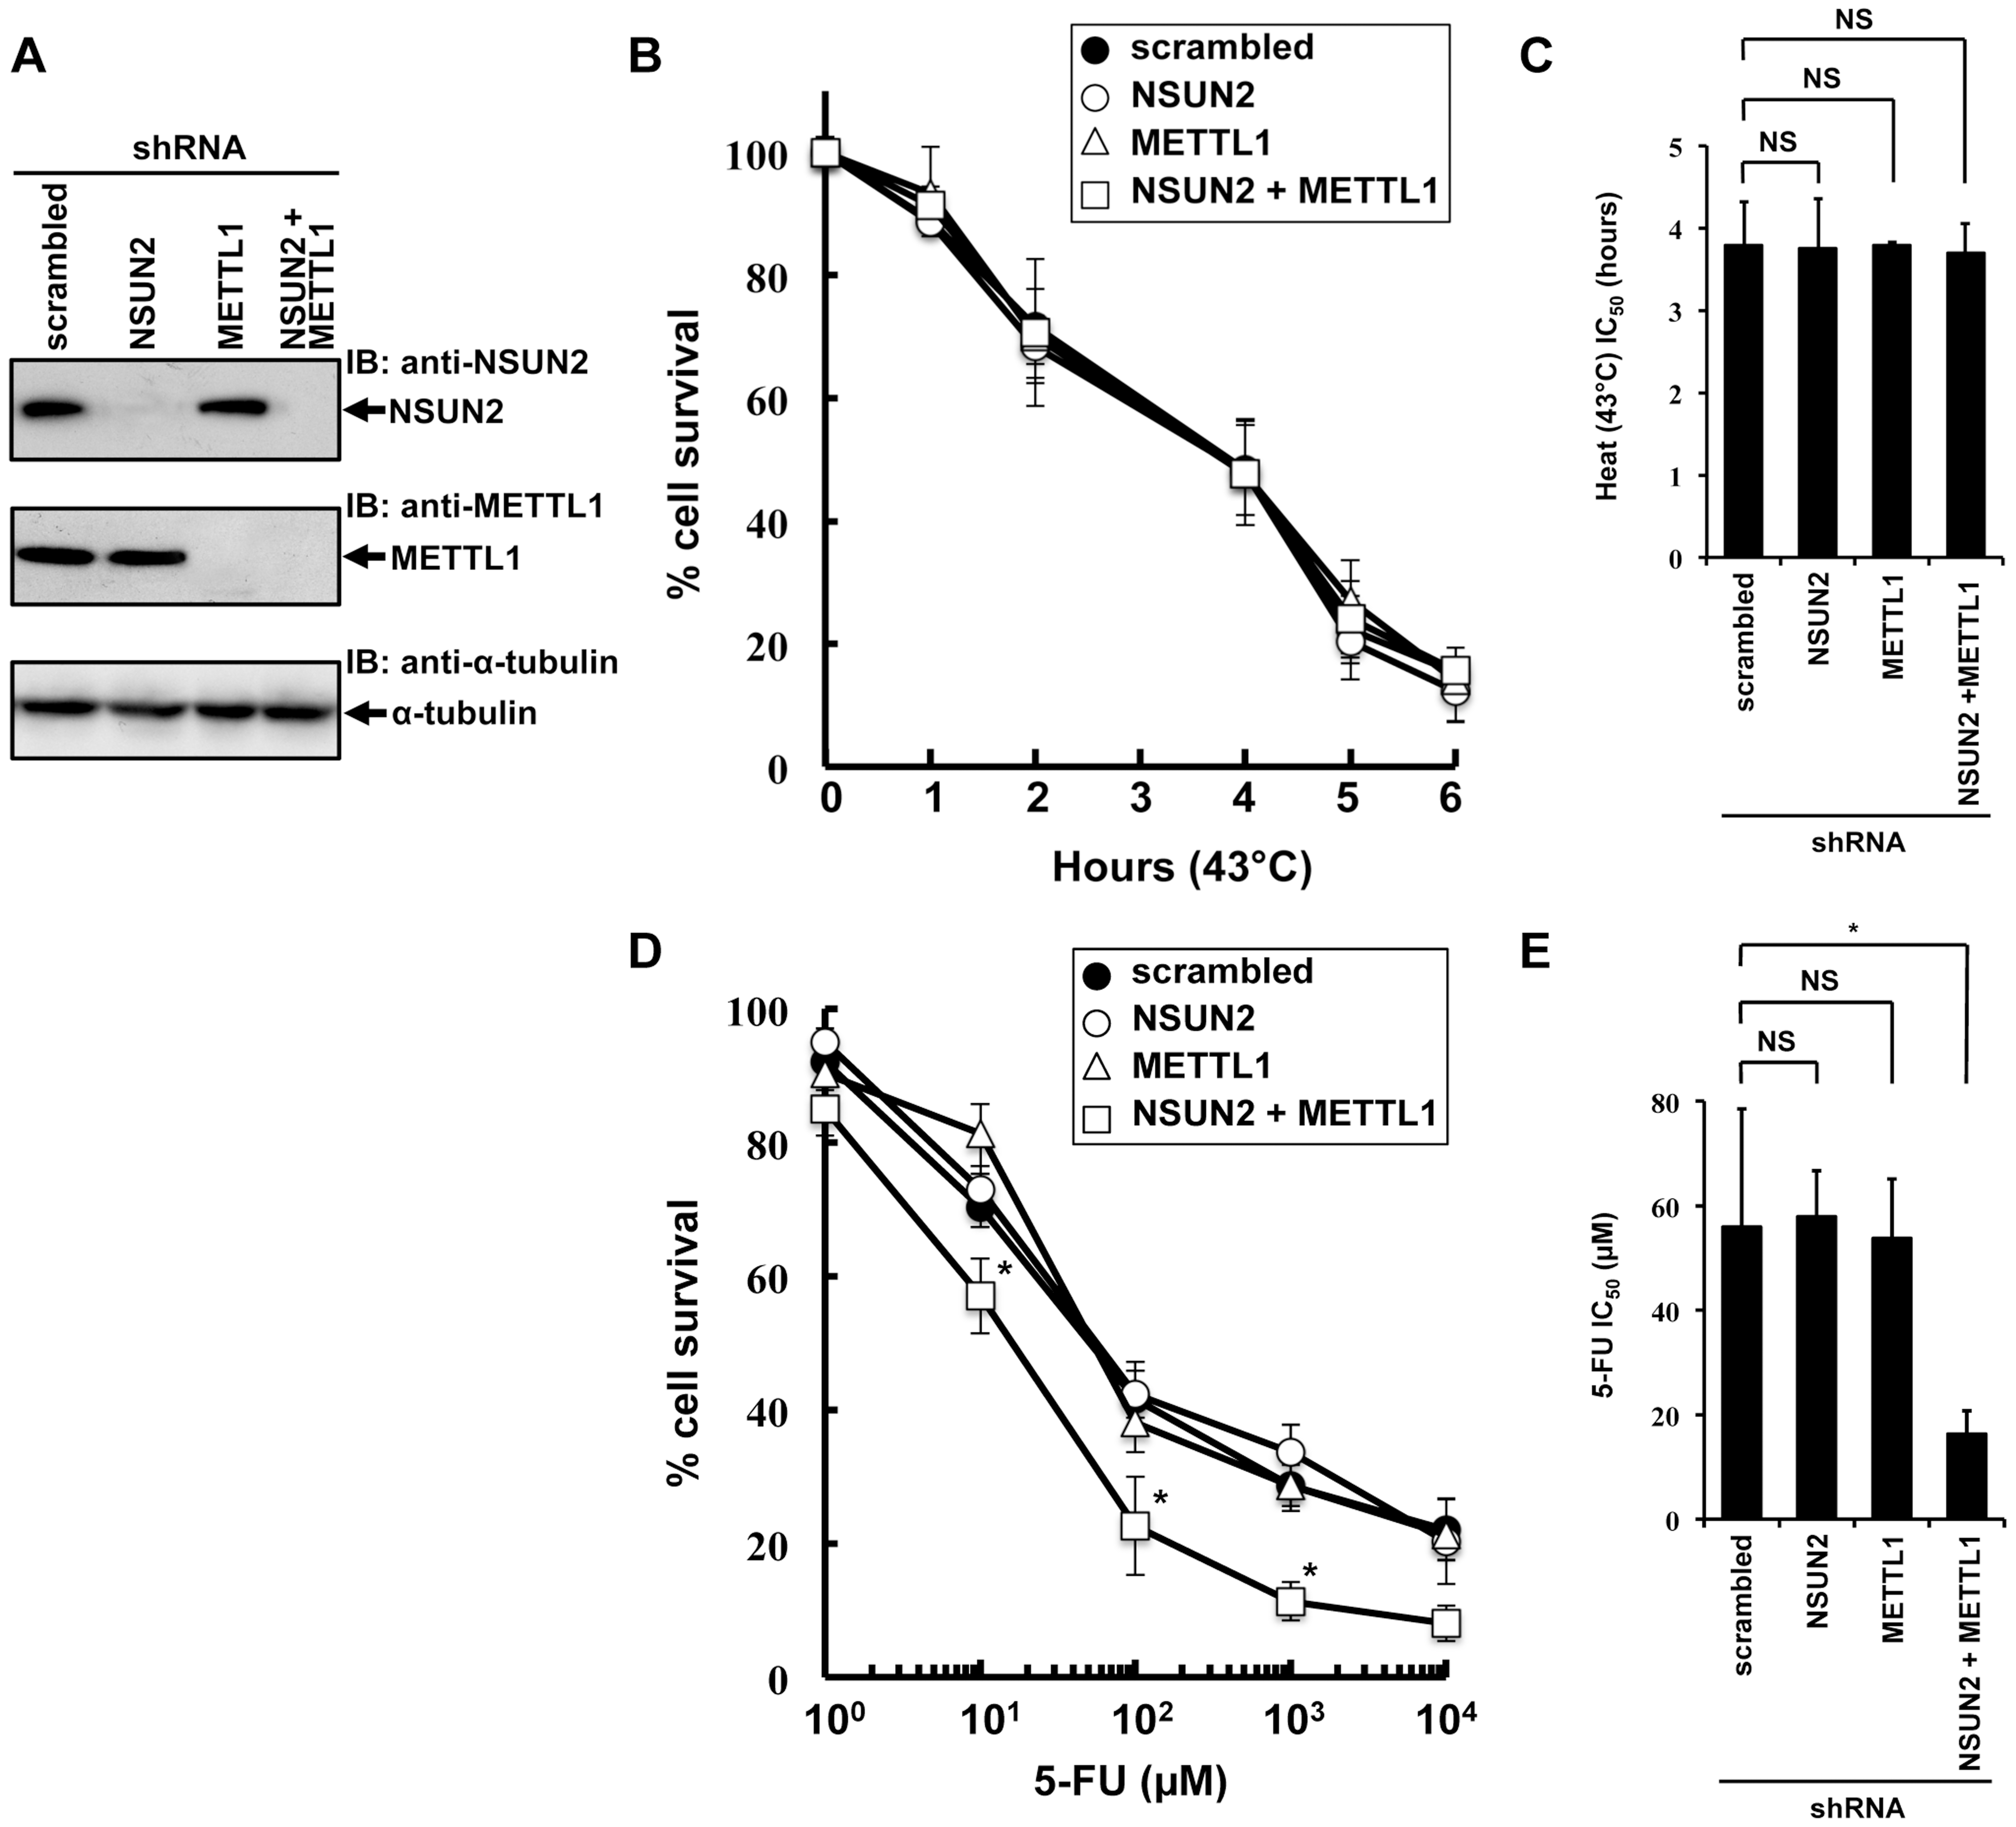 Effects of decreased NSUN2 and METTL1 expression on 5-FU-treatment and heat stress and 5-FU.